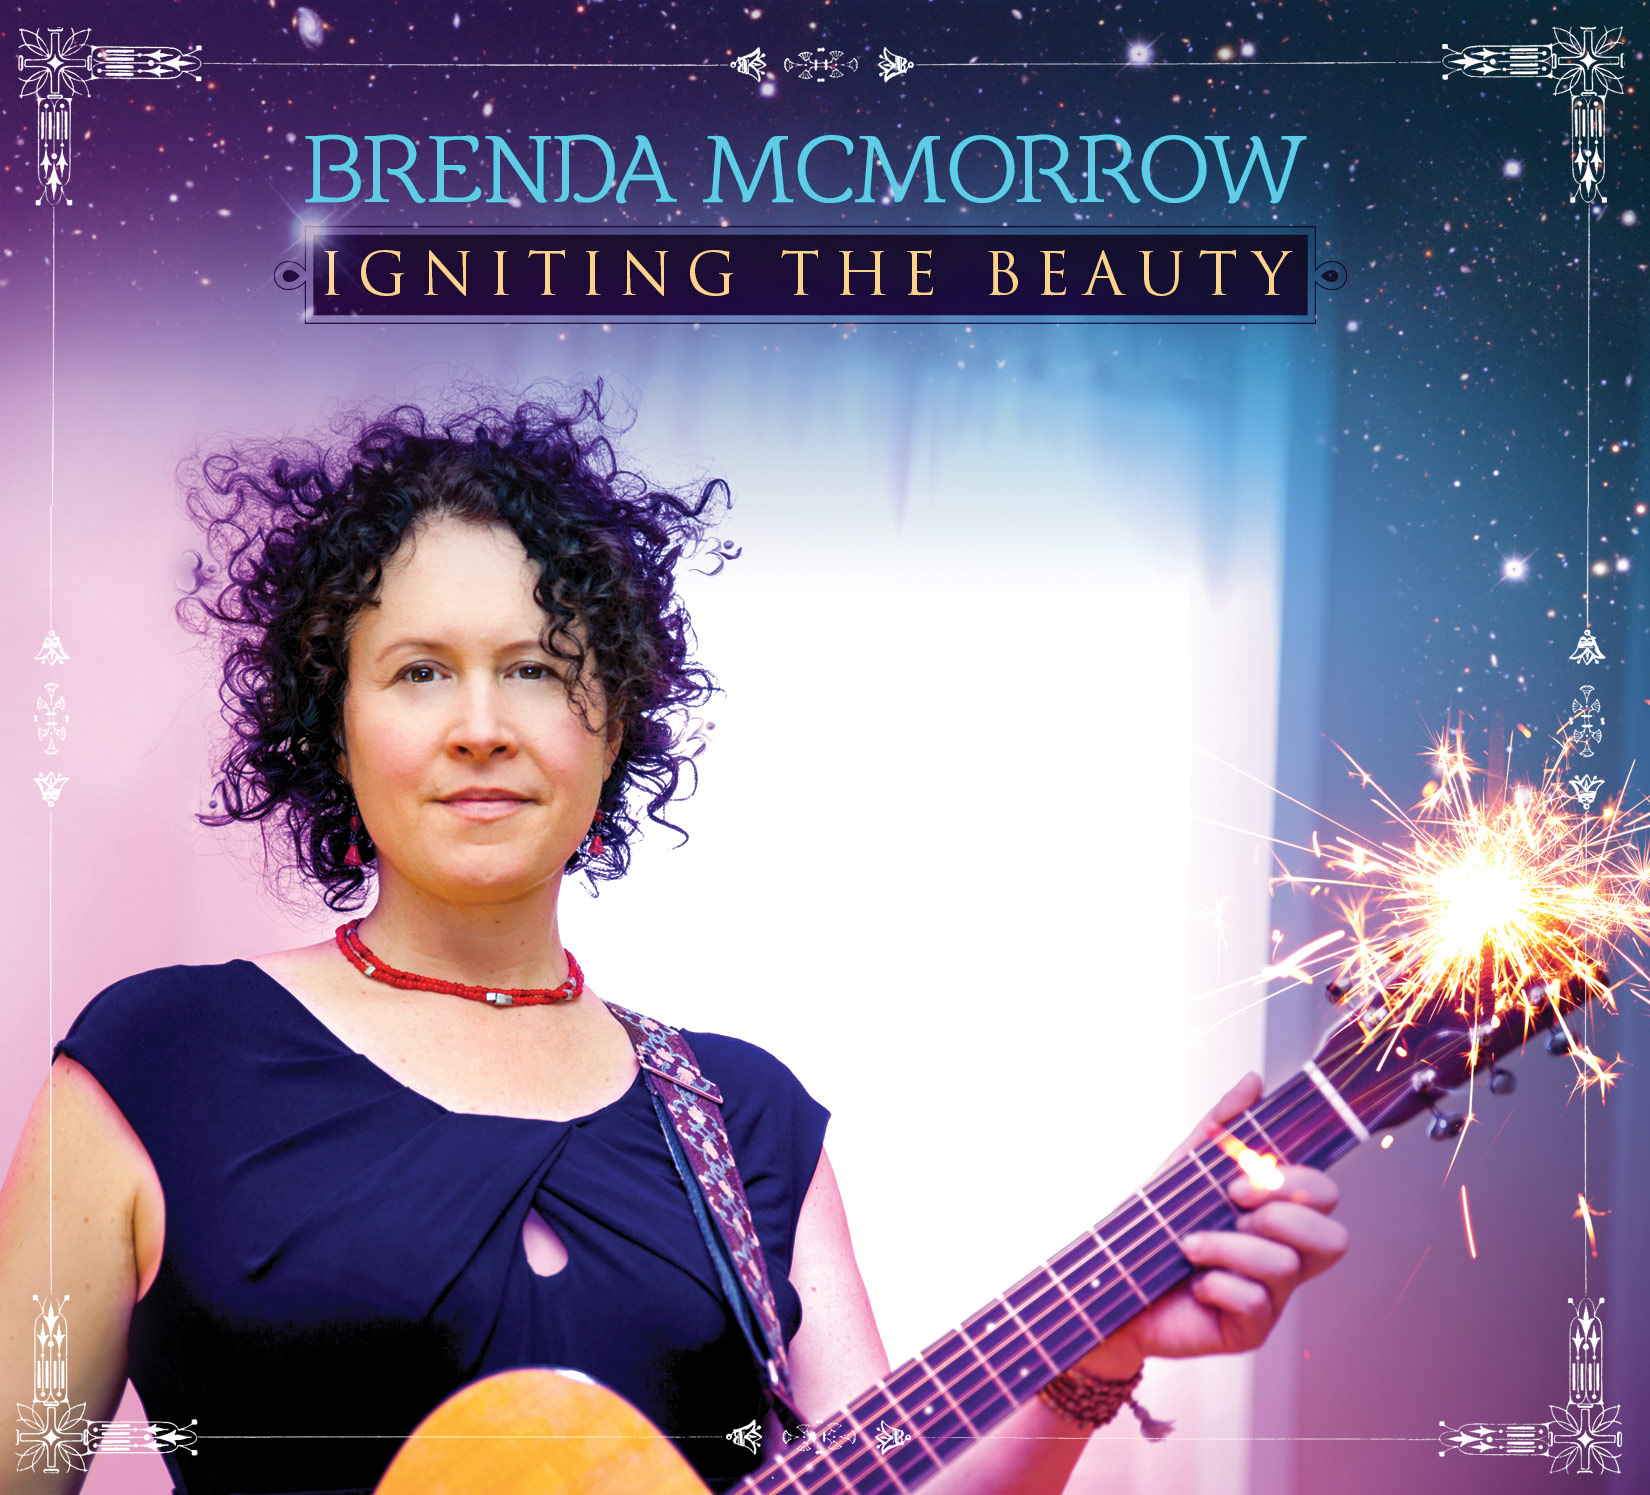 Brenda McMorrow: Igniting The Beauty